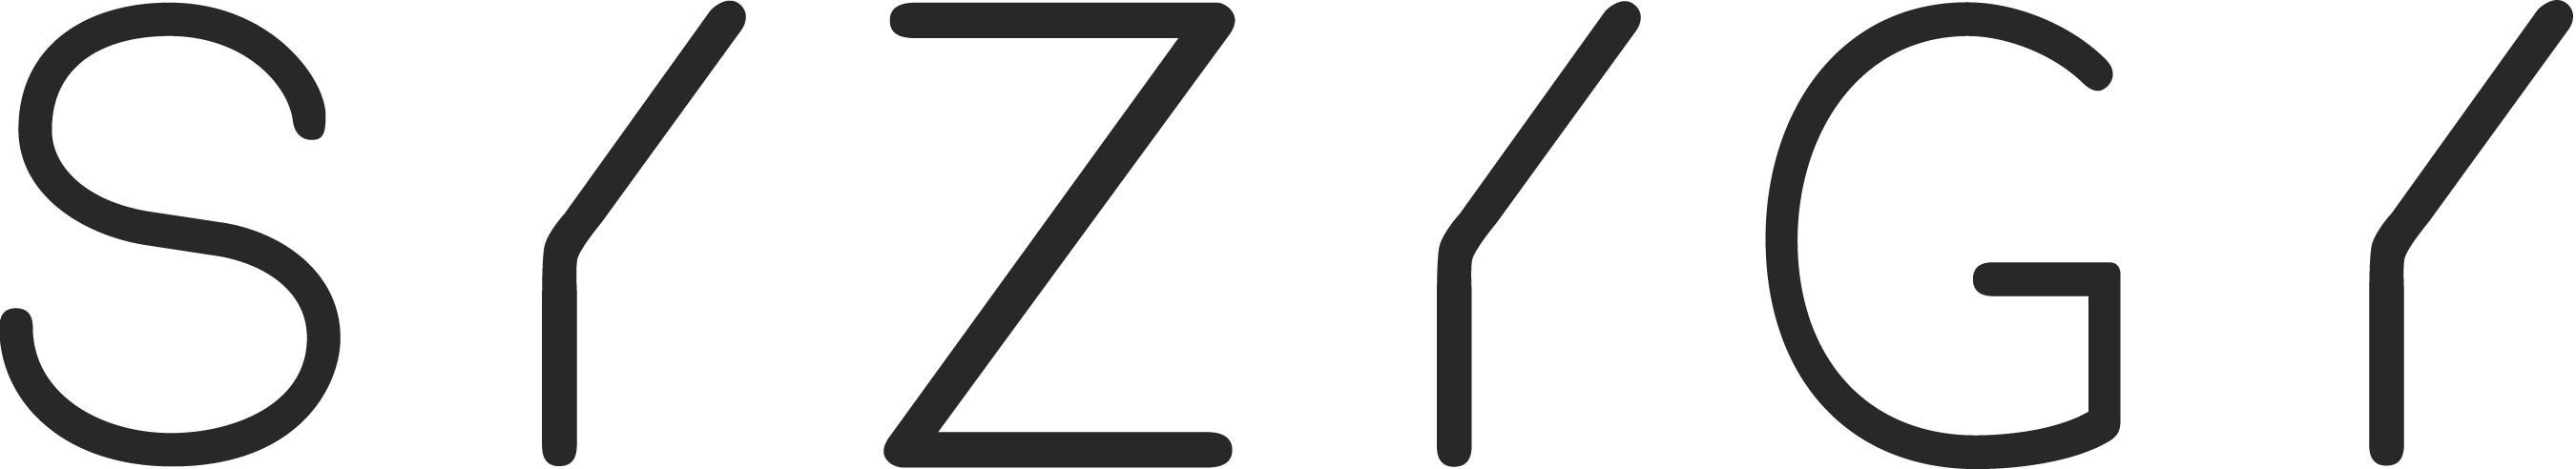 SYZYGY is a digital marketing agency with offices in North America and Europe. The agency uses its strengths in digital technology, design and media to help global brands become relevant online, and stay there.